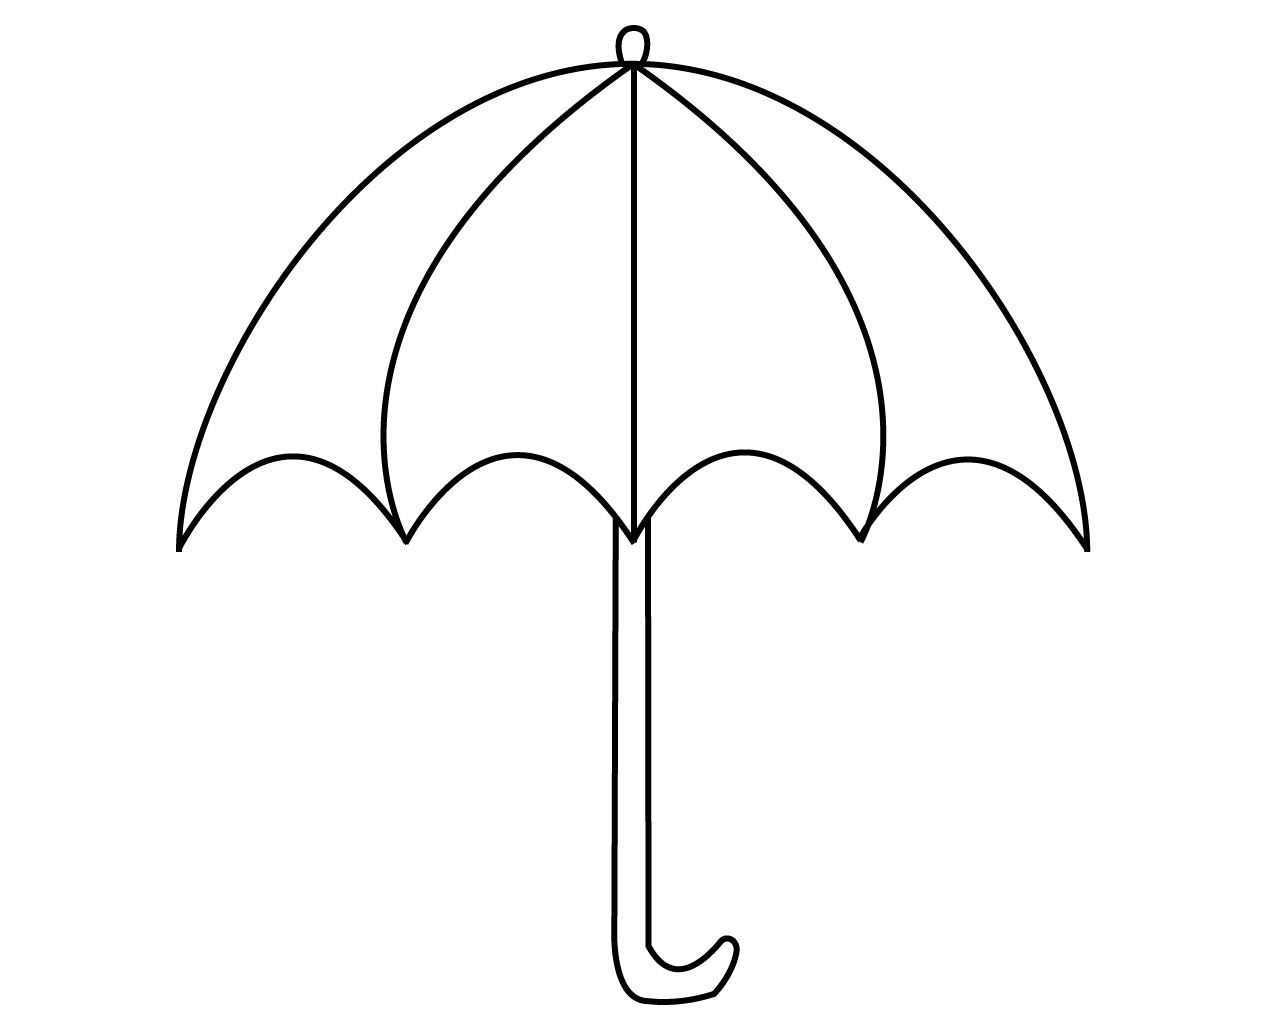 Umbrella Coloring Pages For Your Little Ones Umbrella Coloring